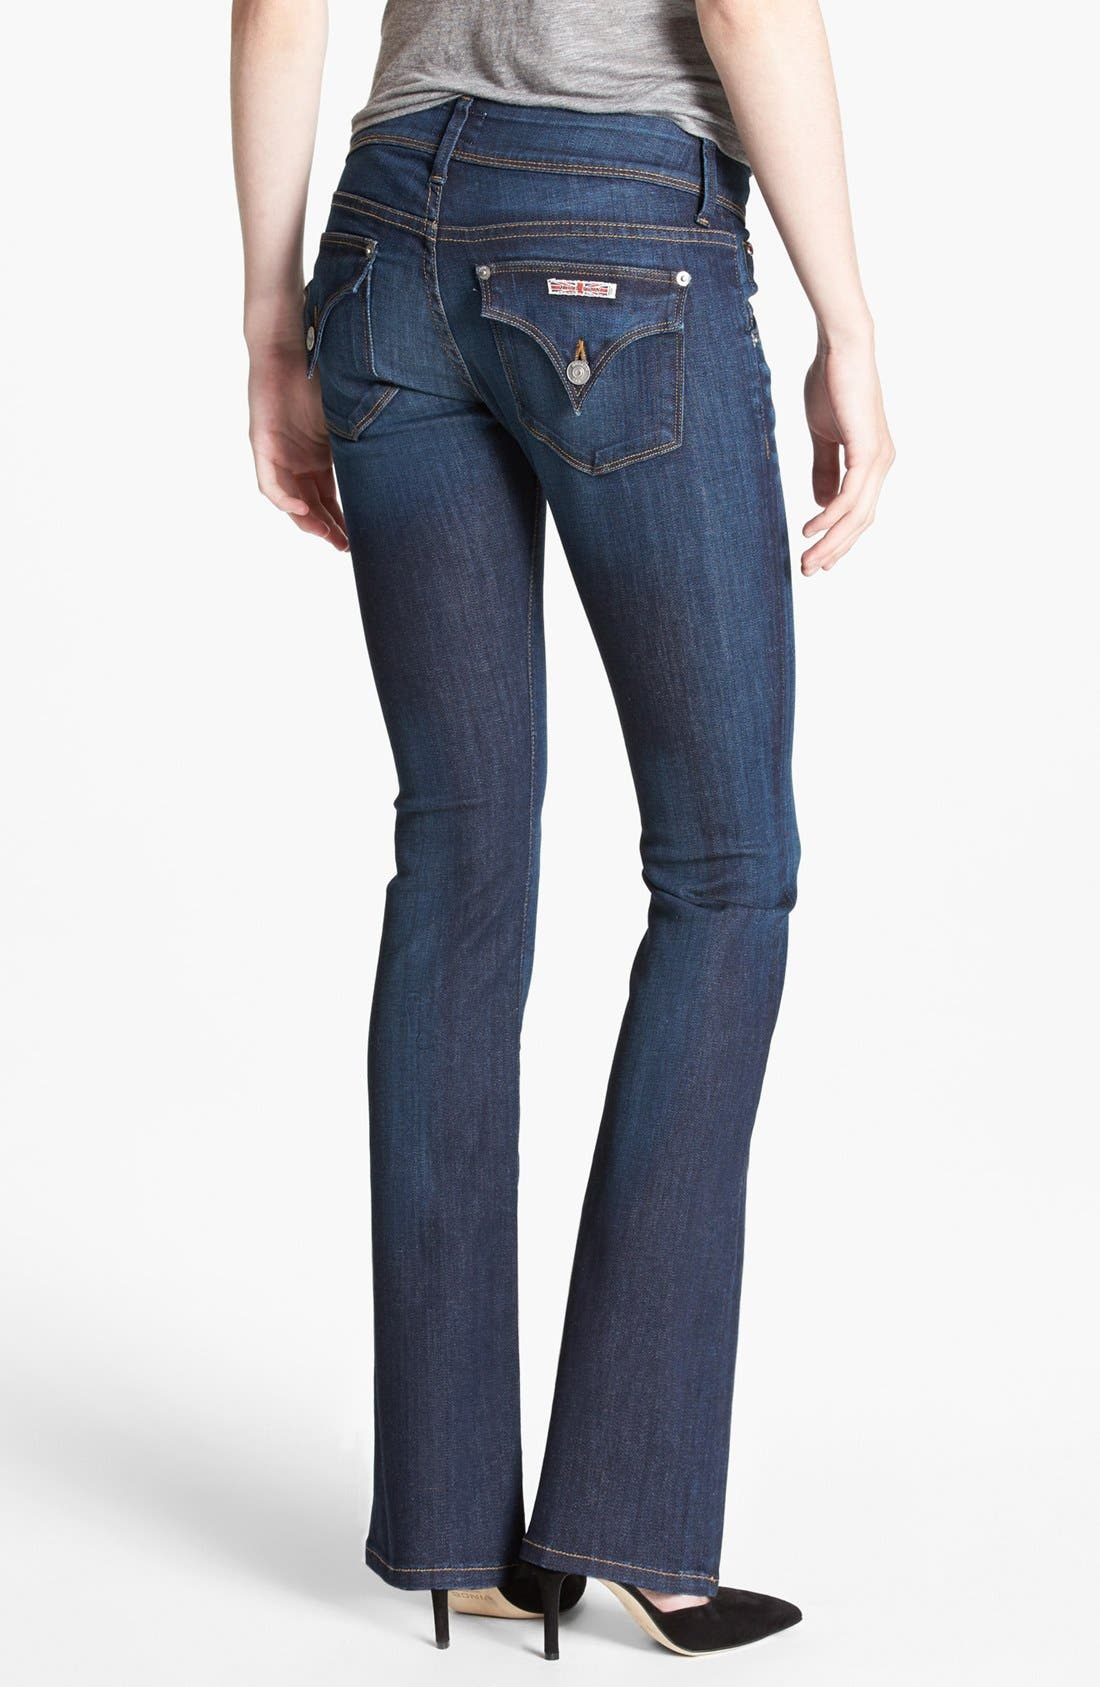 Alternate Image 2  - Hudson Jeans 'Beth' Baby Bootcut Jeans (Iconic) (Petite)